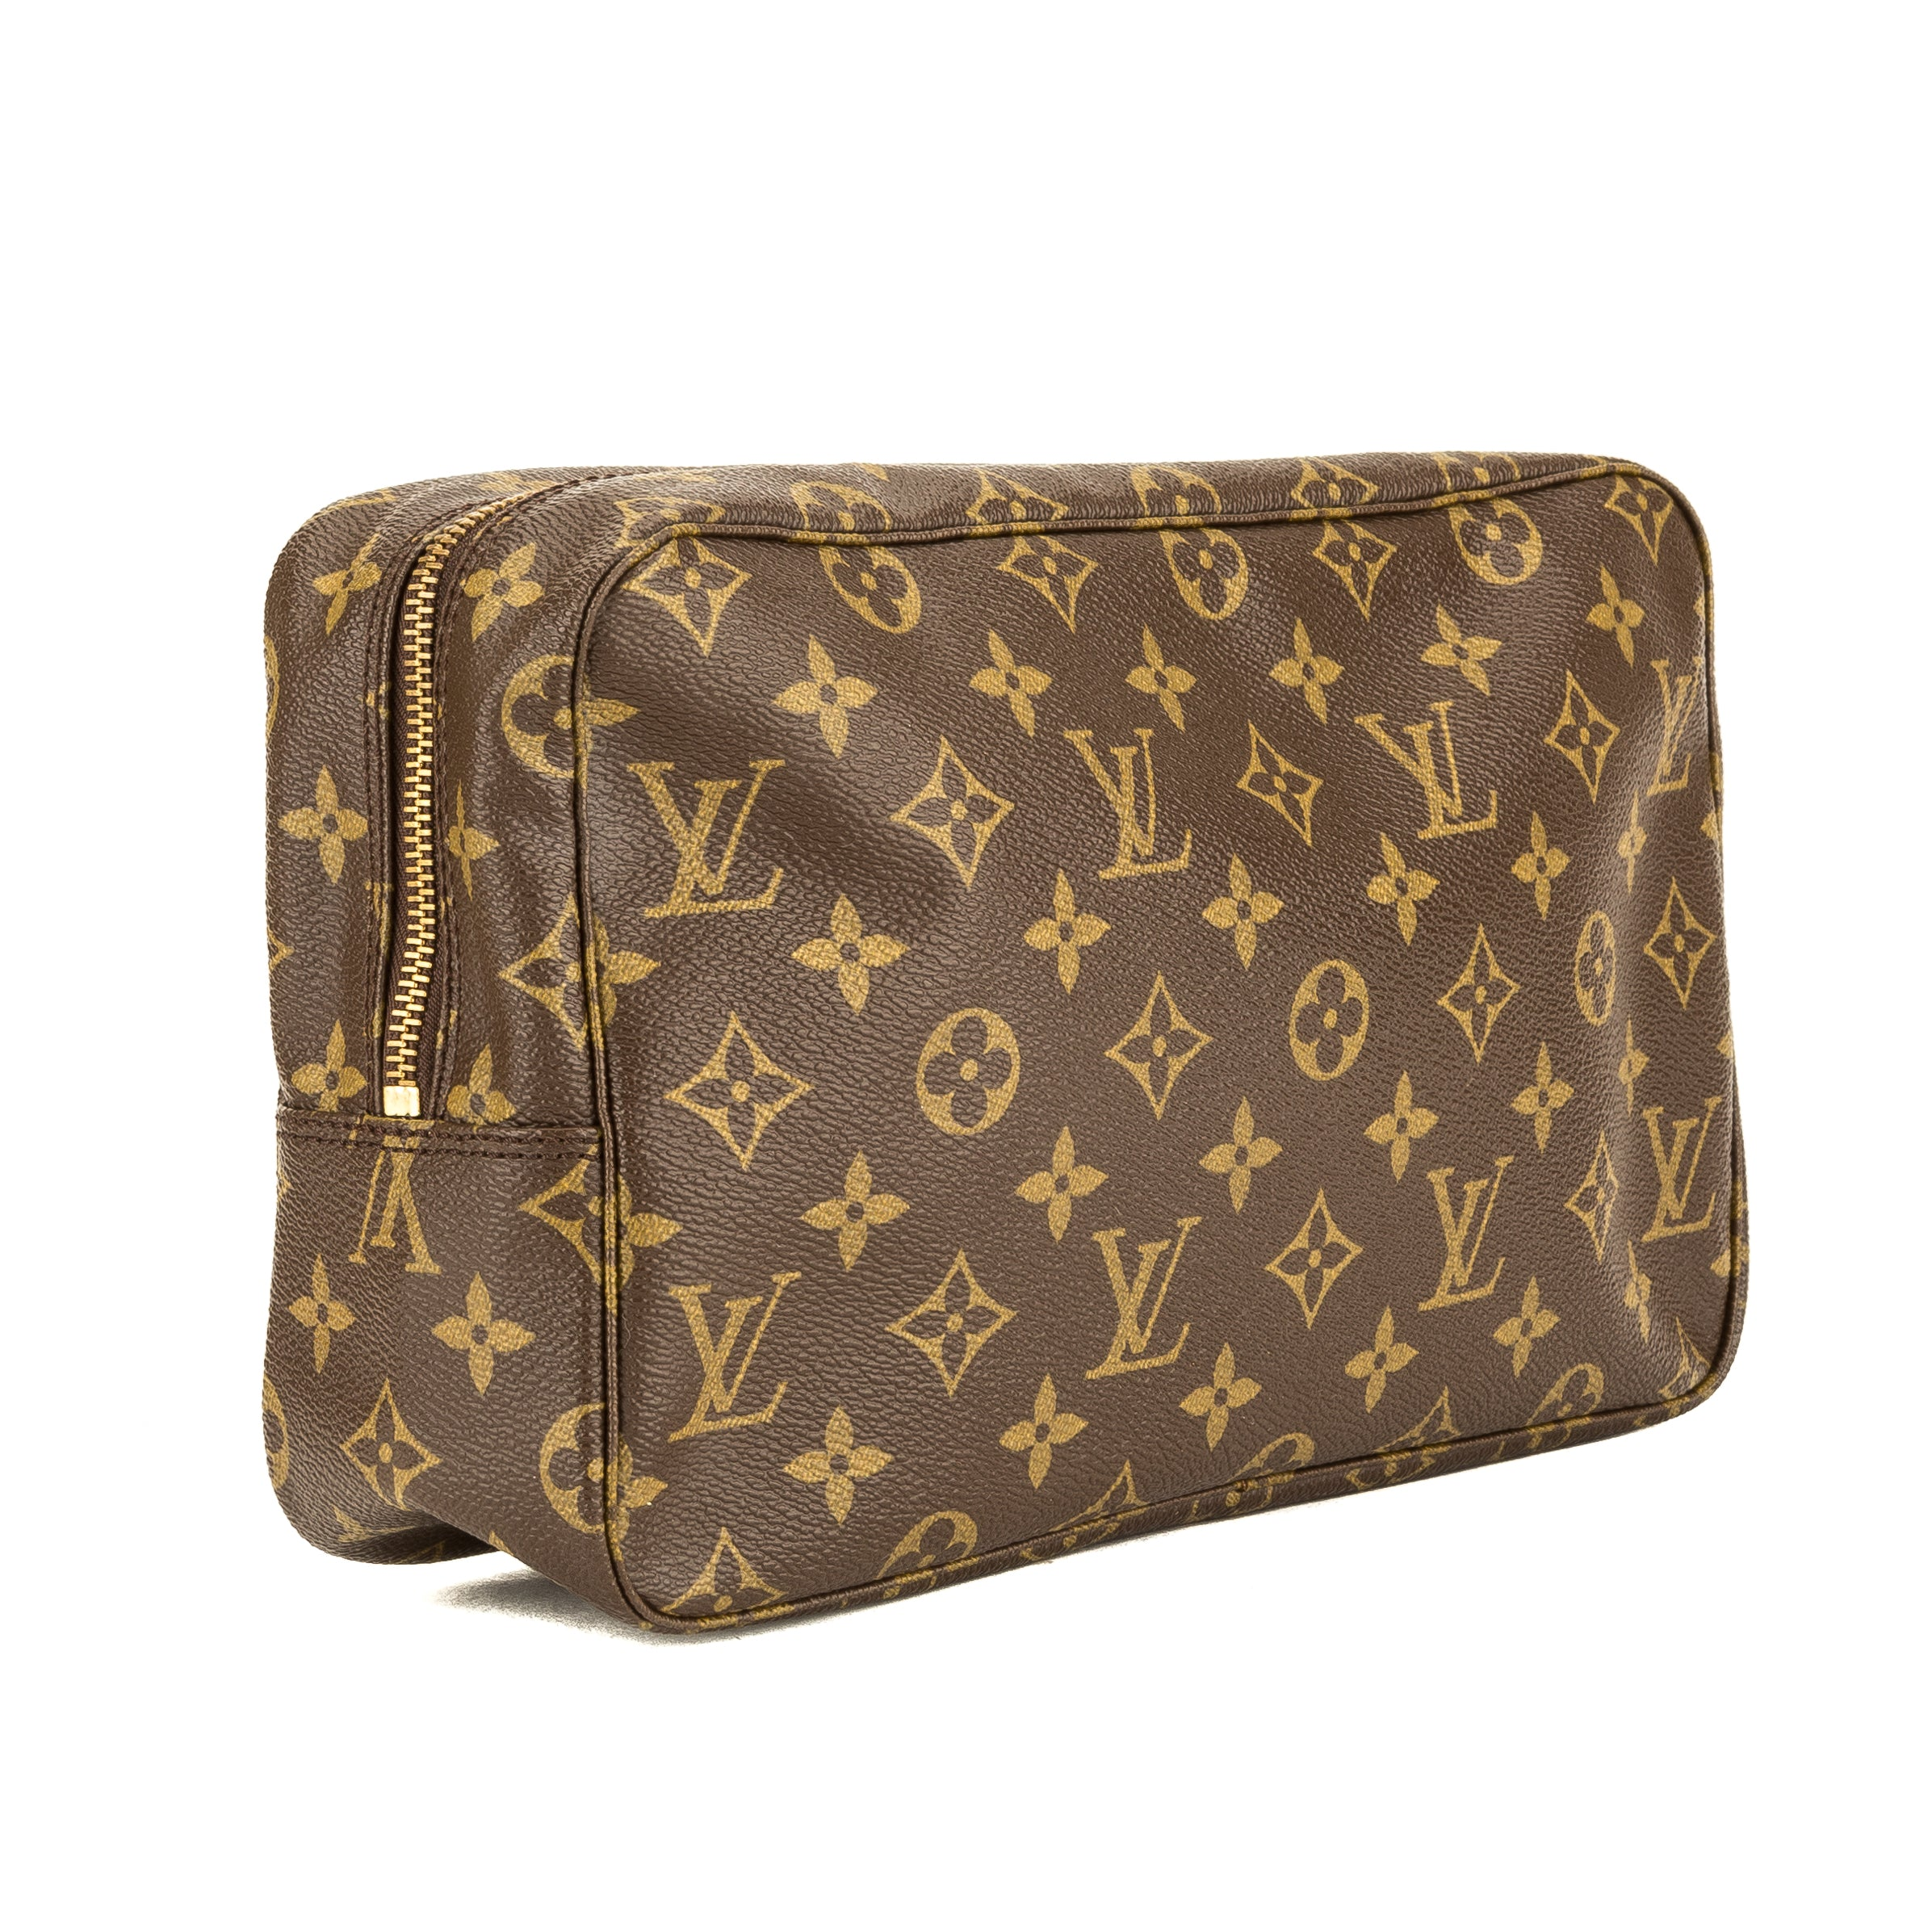 Louis Vuitton Monogram Trousse Toilette 28 (3923041) - 3923041  4b684ed8ba546